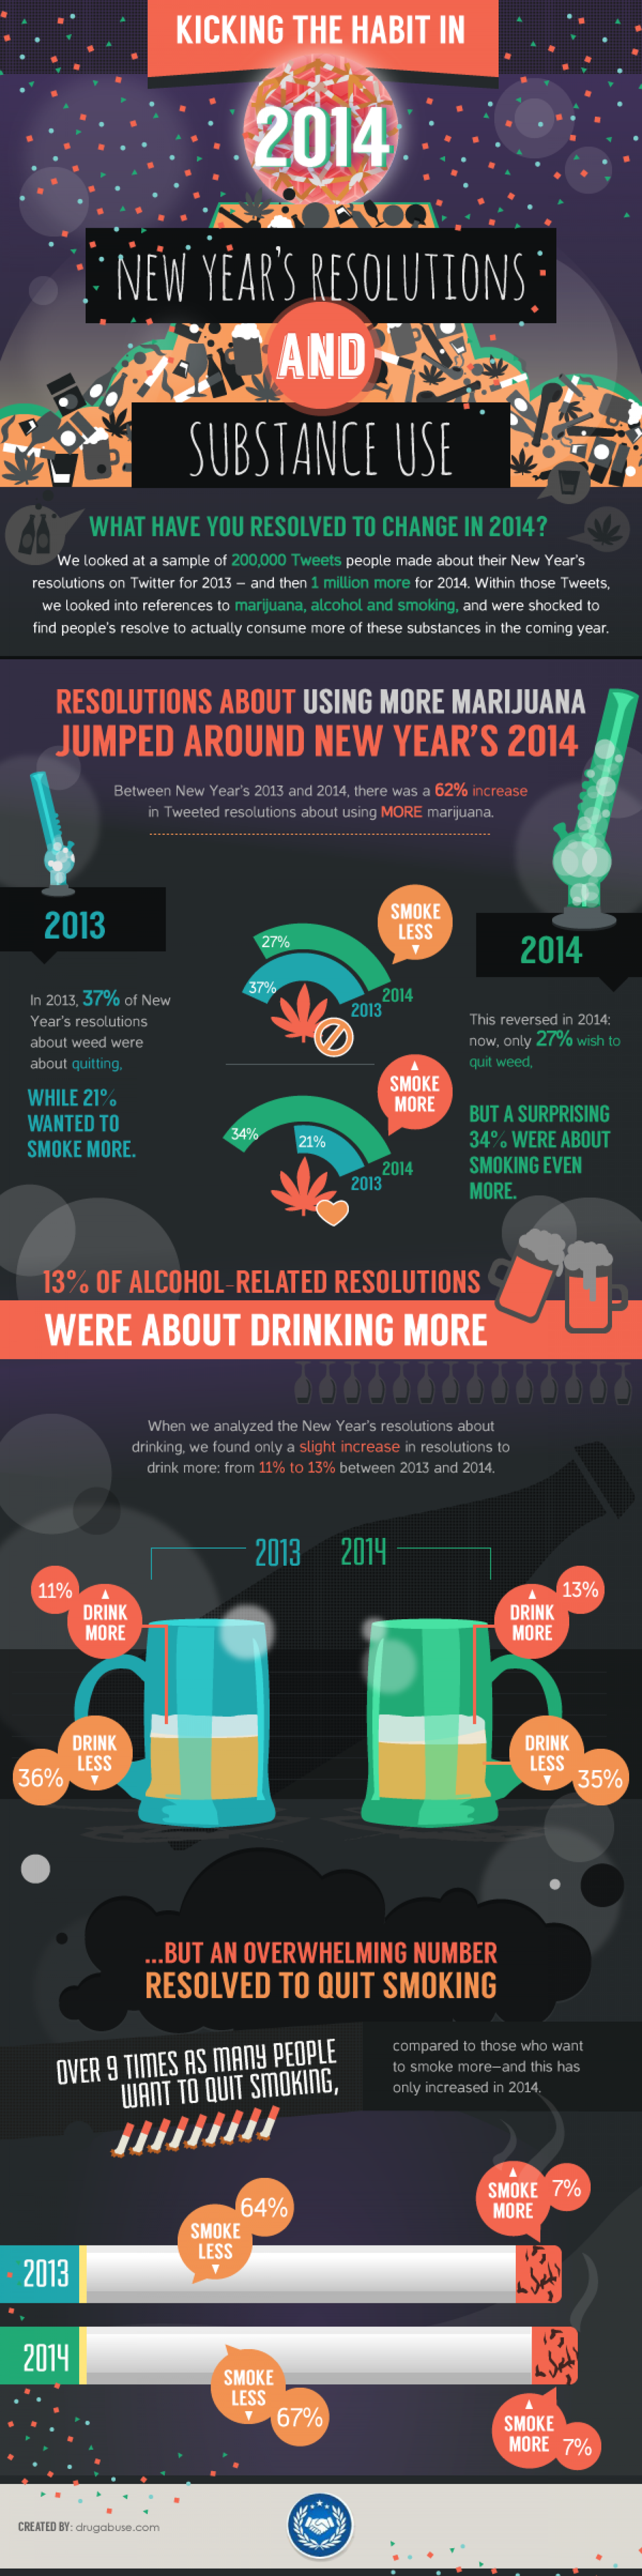 Kicking the Habit in 2014: Drug Resolutions on Twitter Infographic